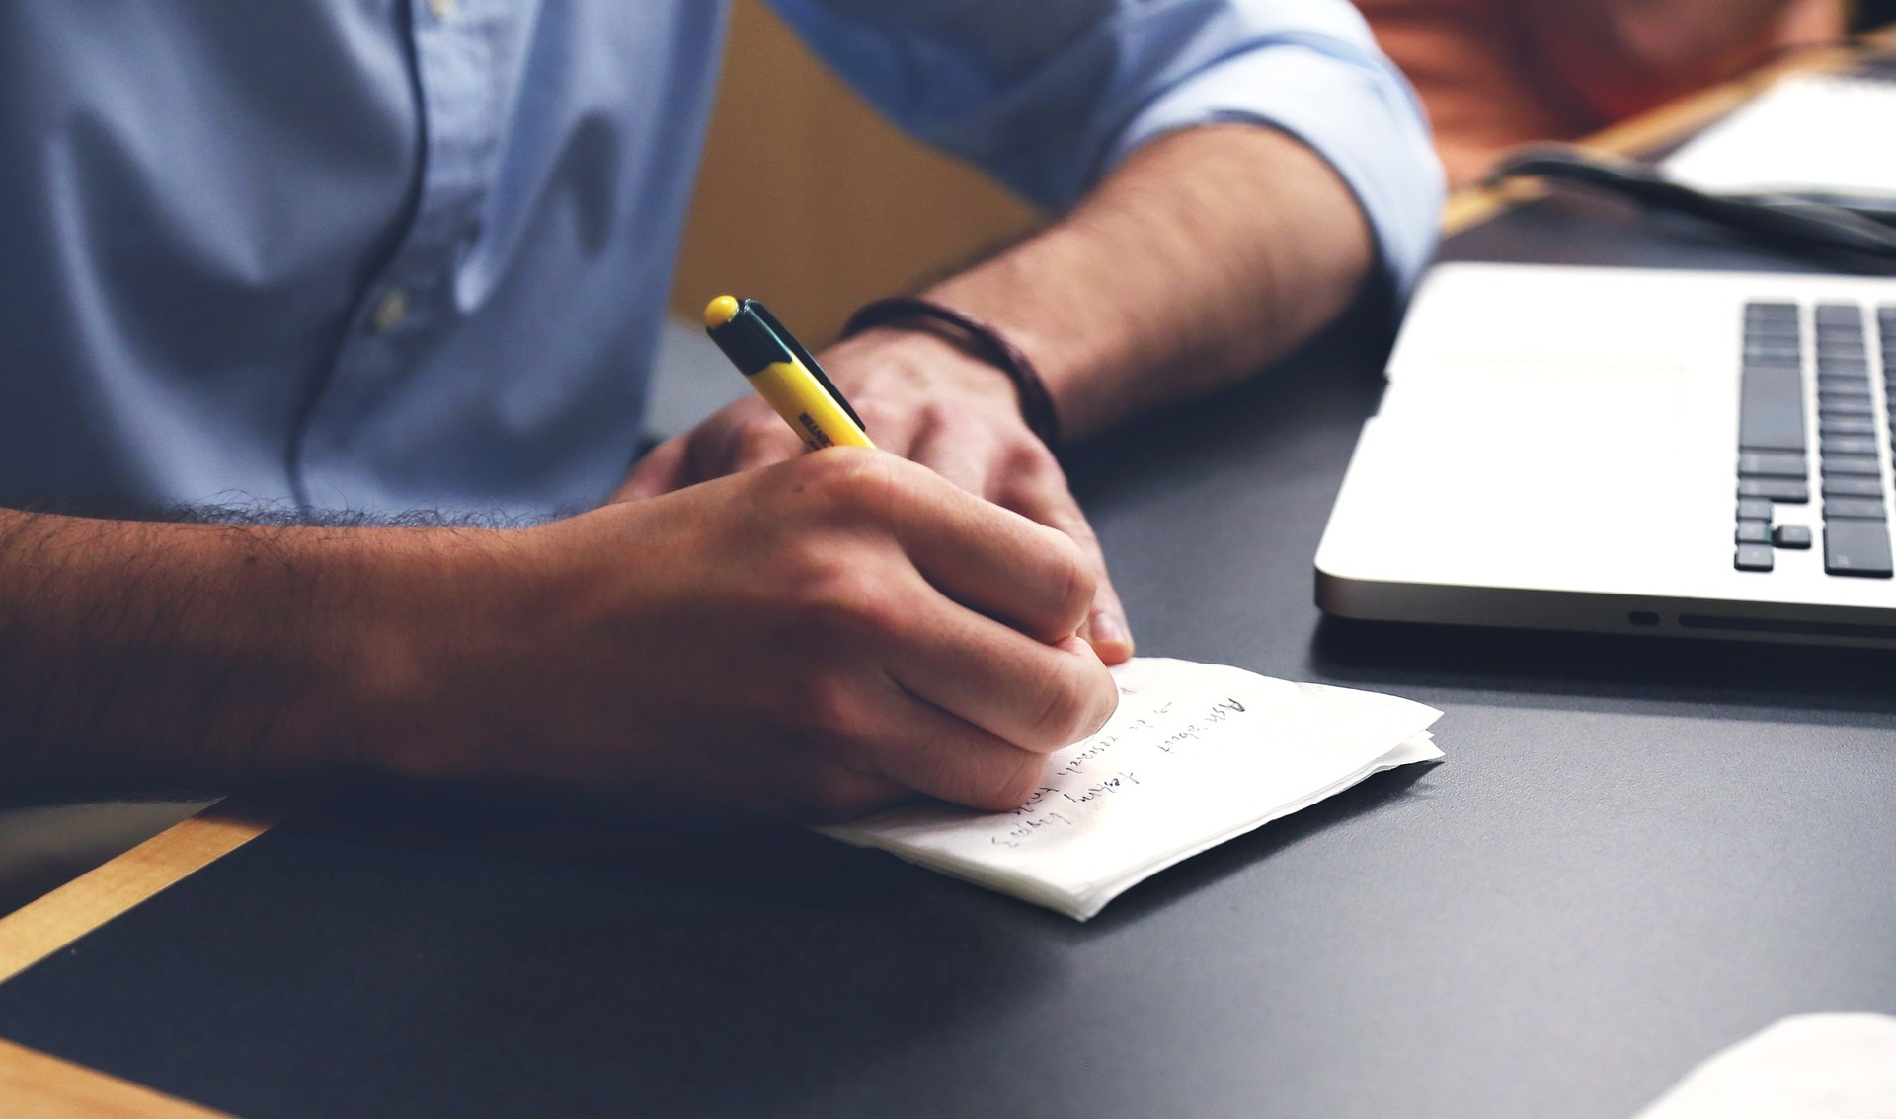 Types of Written Tests for Job Interviews | Career Trend